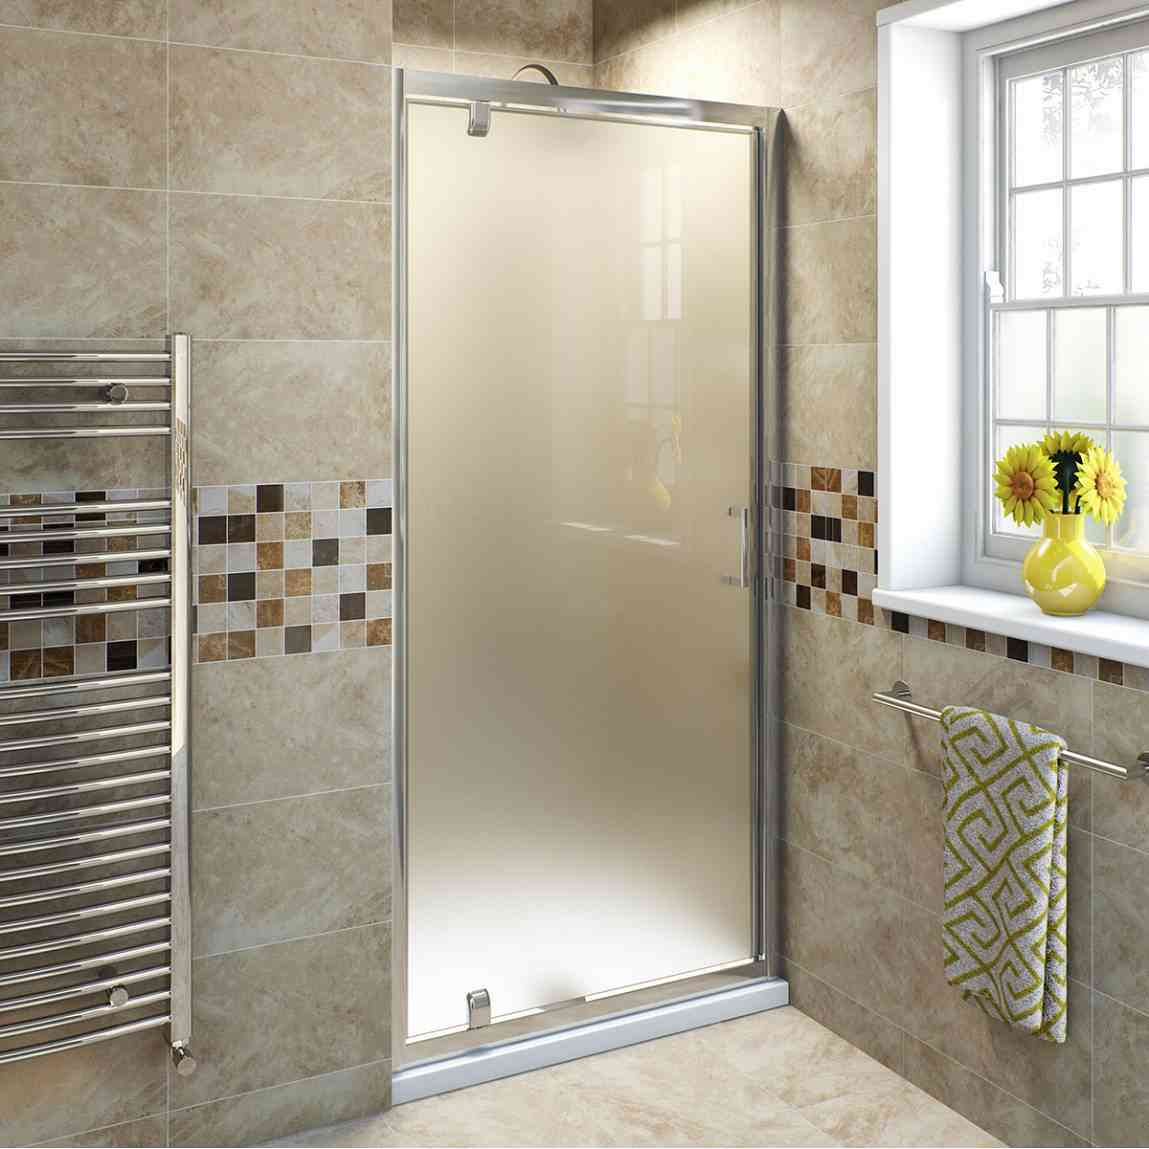 Frosted sliding glass door for bathroom home and garden for 4 sliding glass door